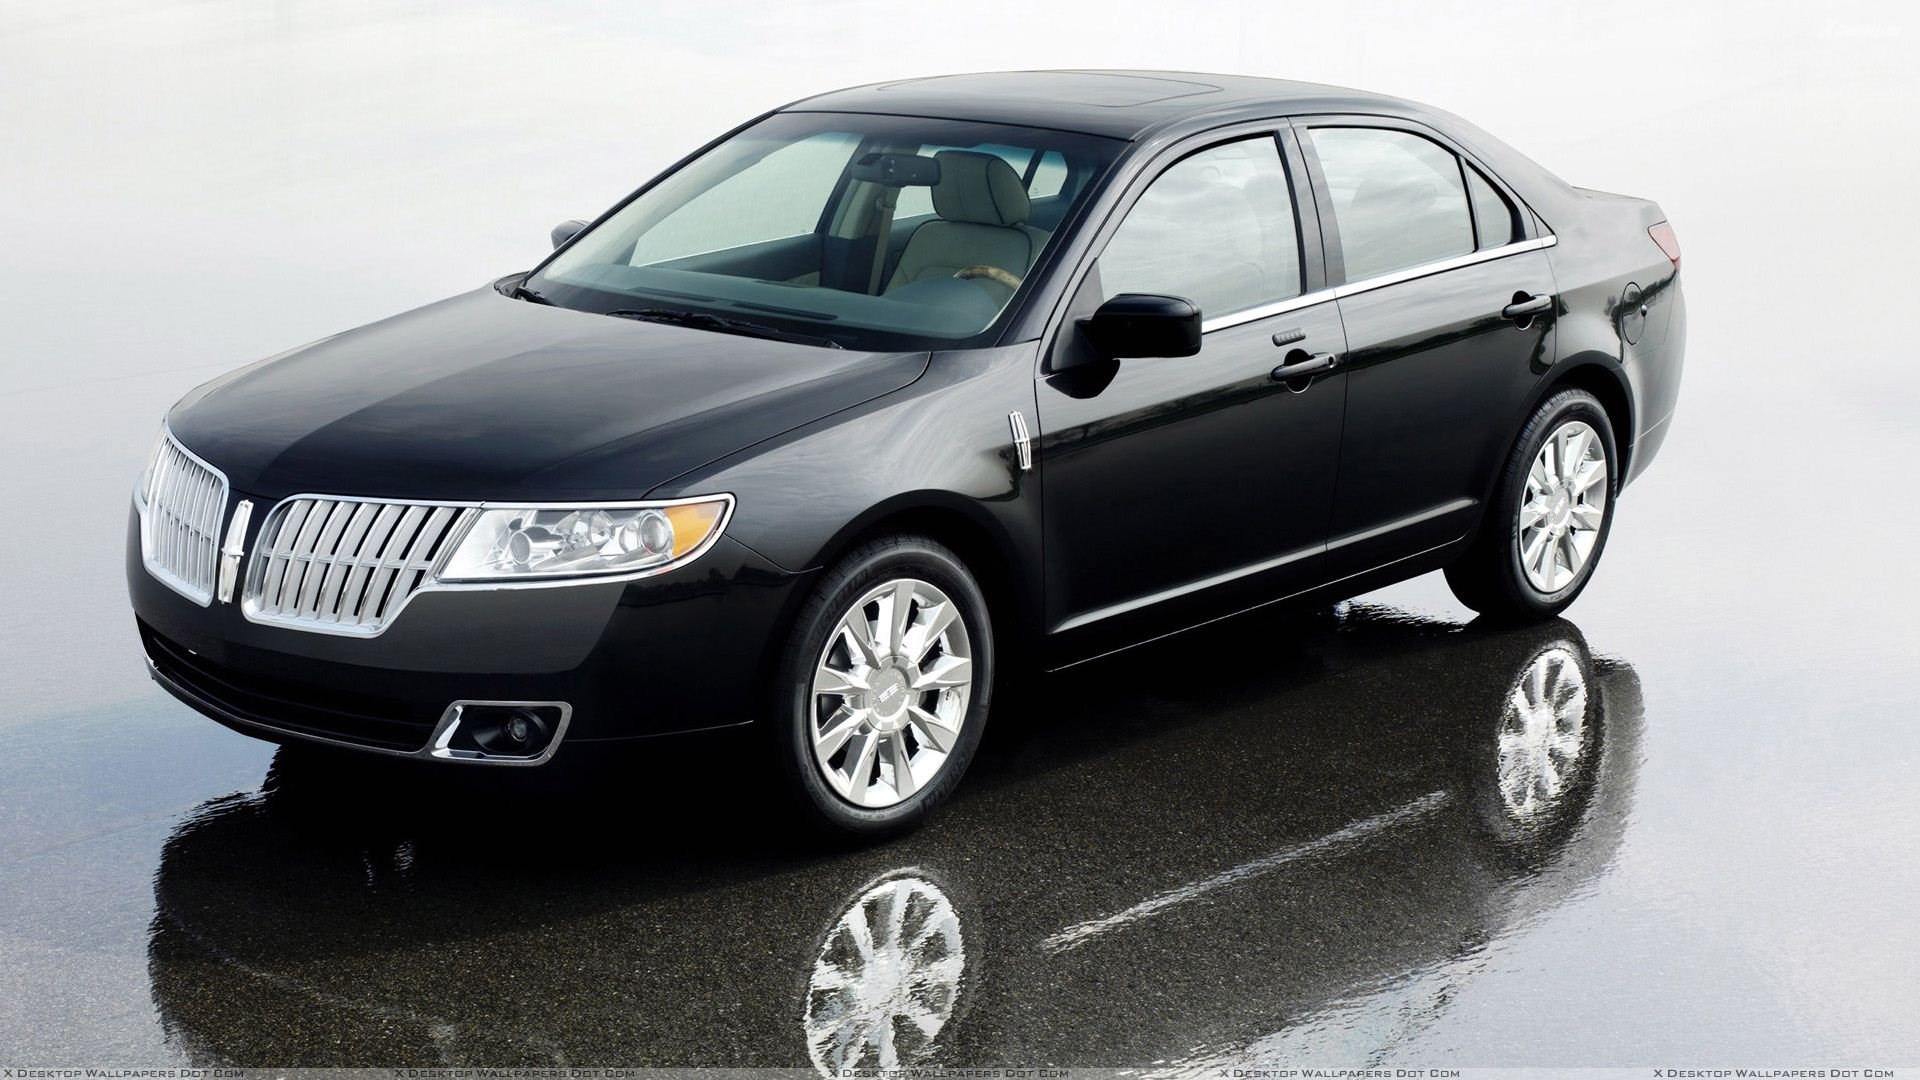 2010 Lincoln Mkz Side Front Pose In Black Wallpaper